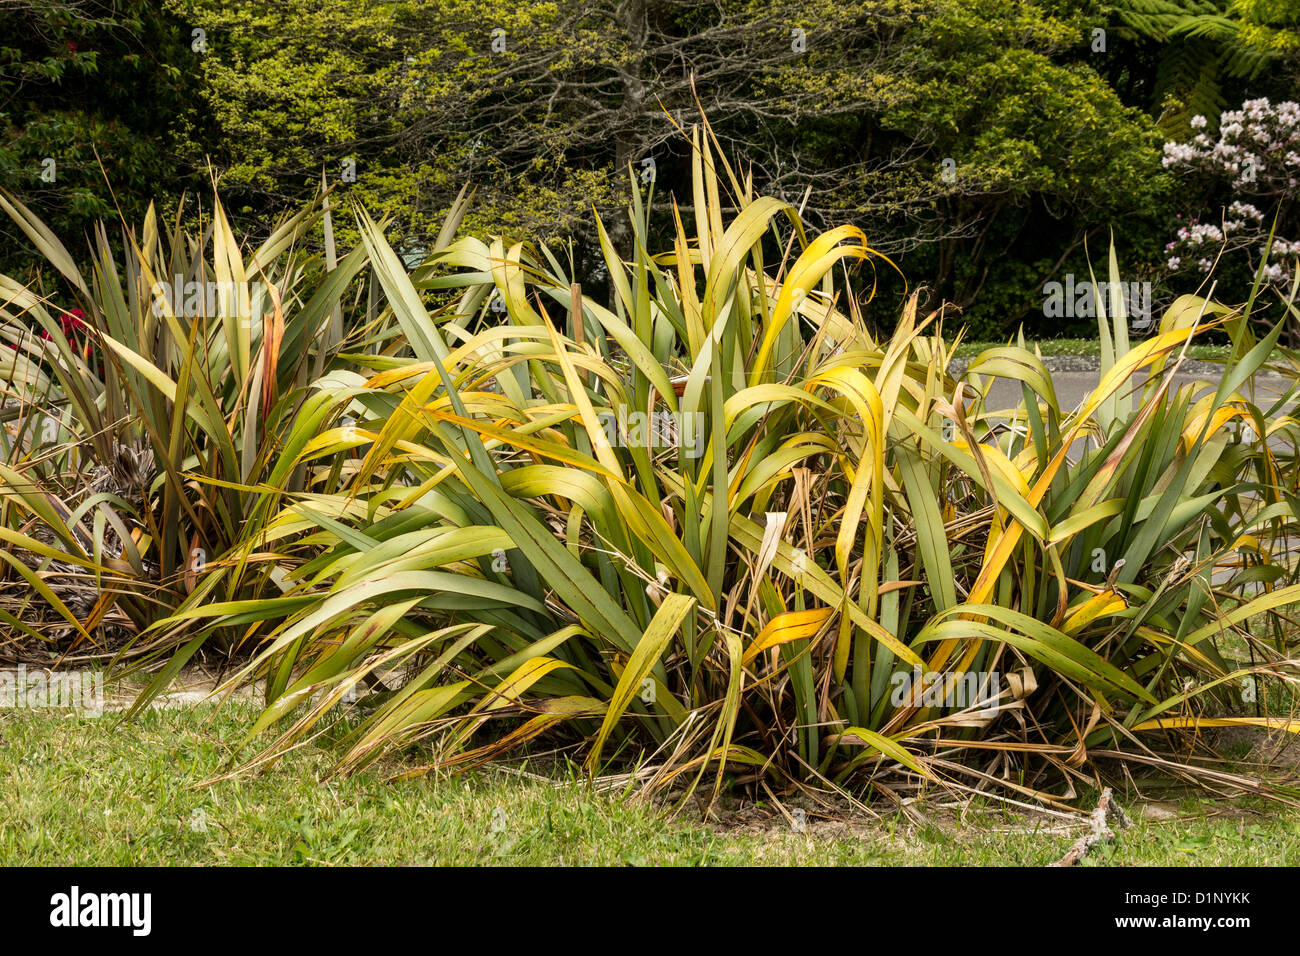 New Zealand flax (Phormium), suffering from yellow leaf disease, or PYLD. - Stock Image